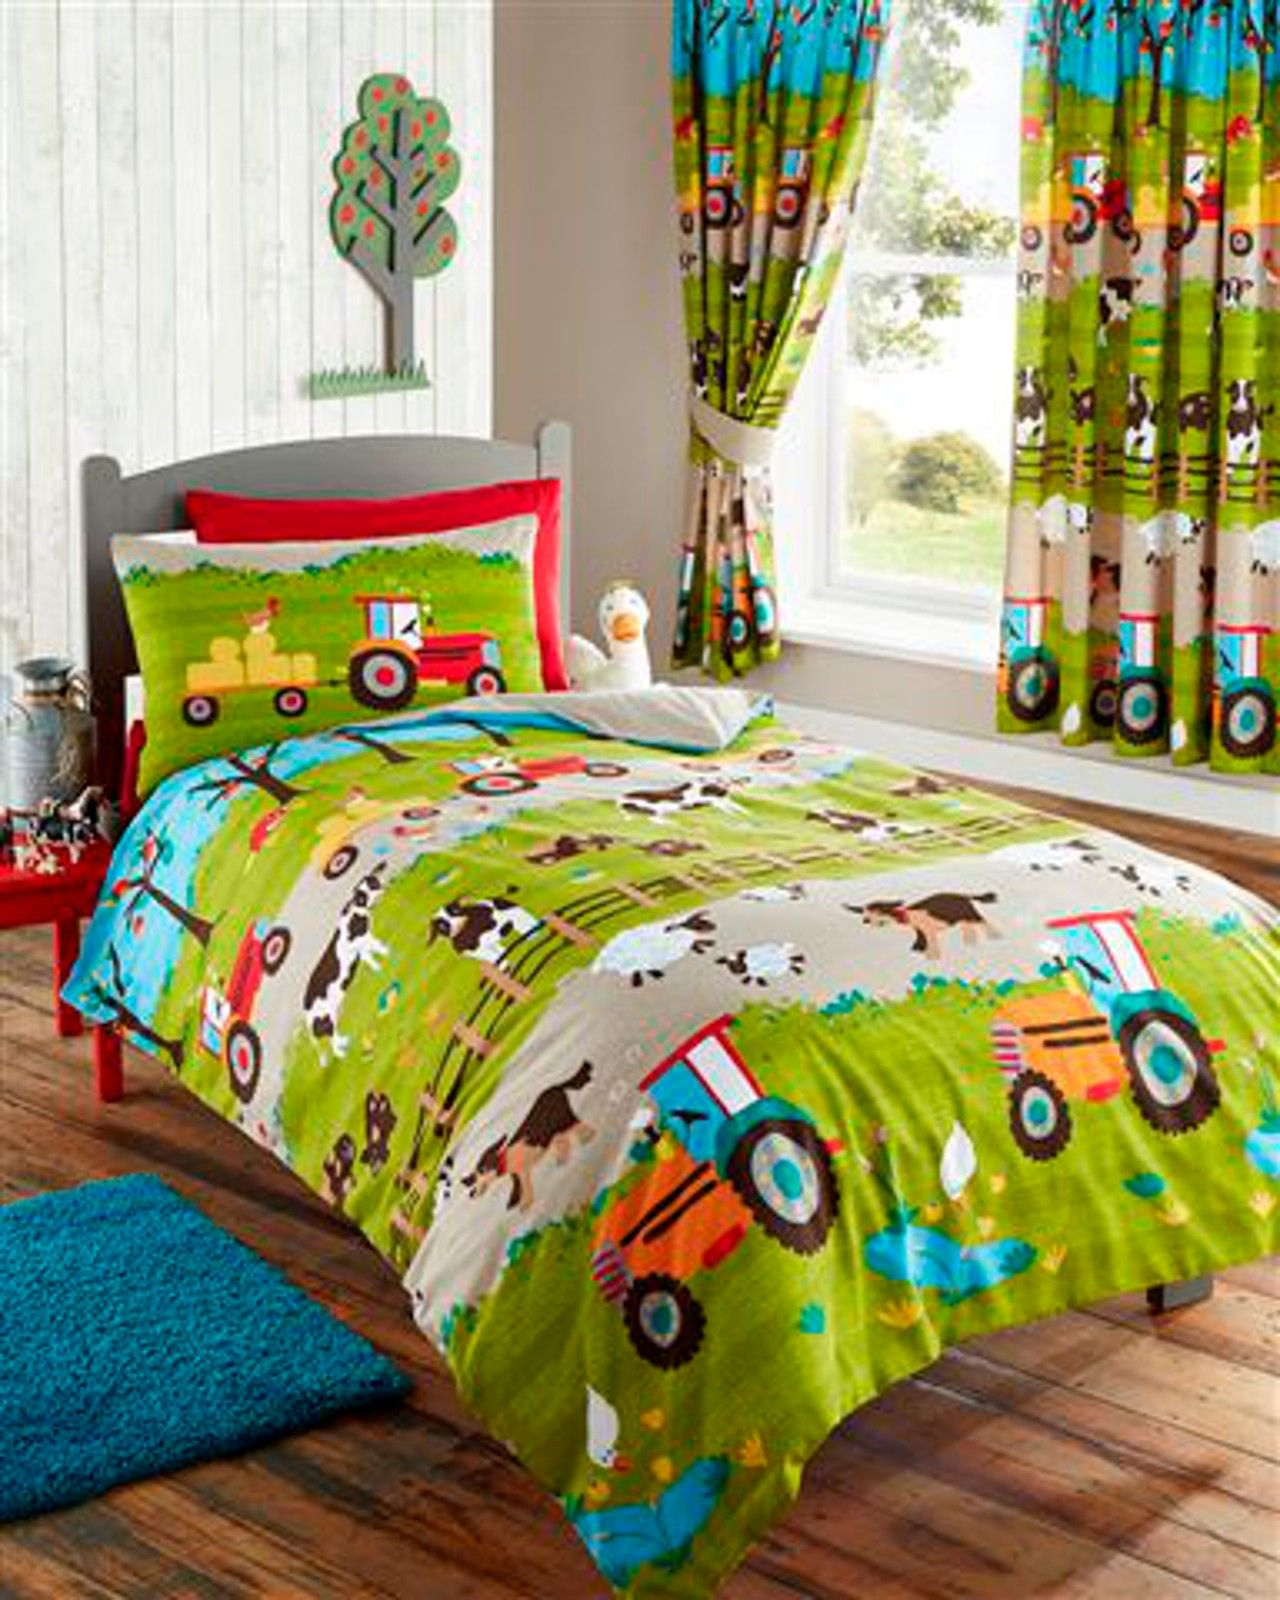 Farm Animals Tractor Kids Duvet Cover OR Matching Curtains